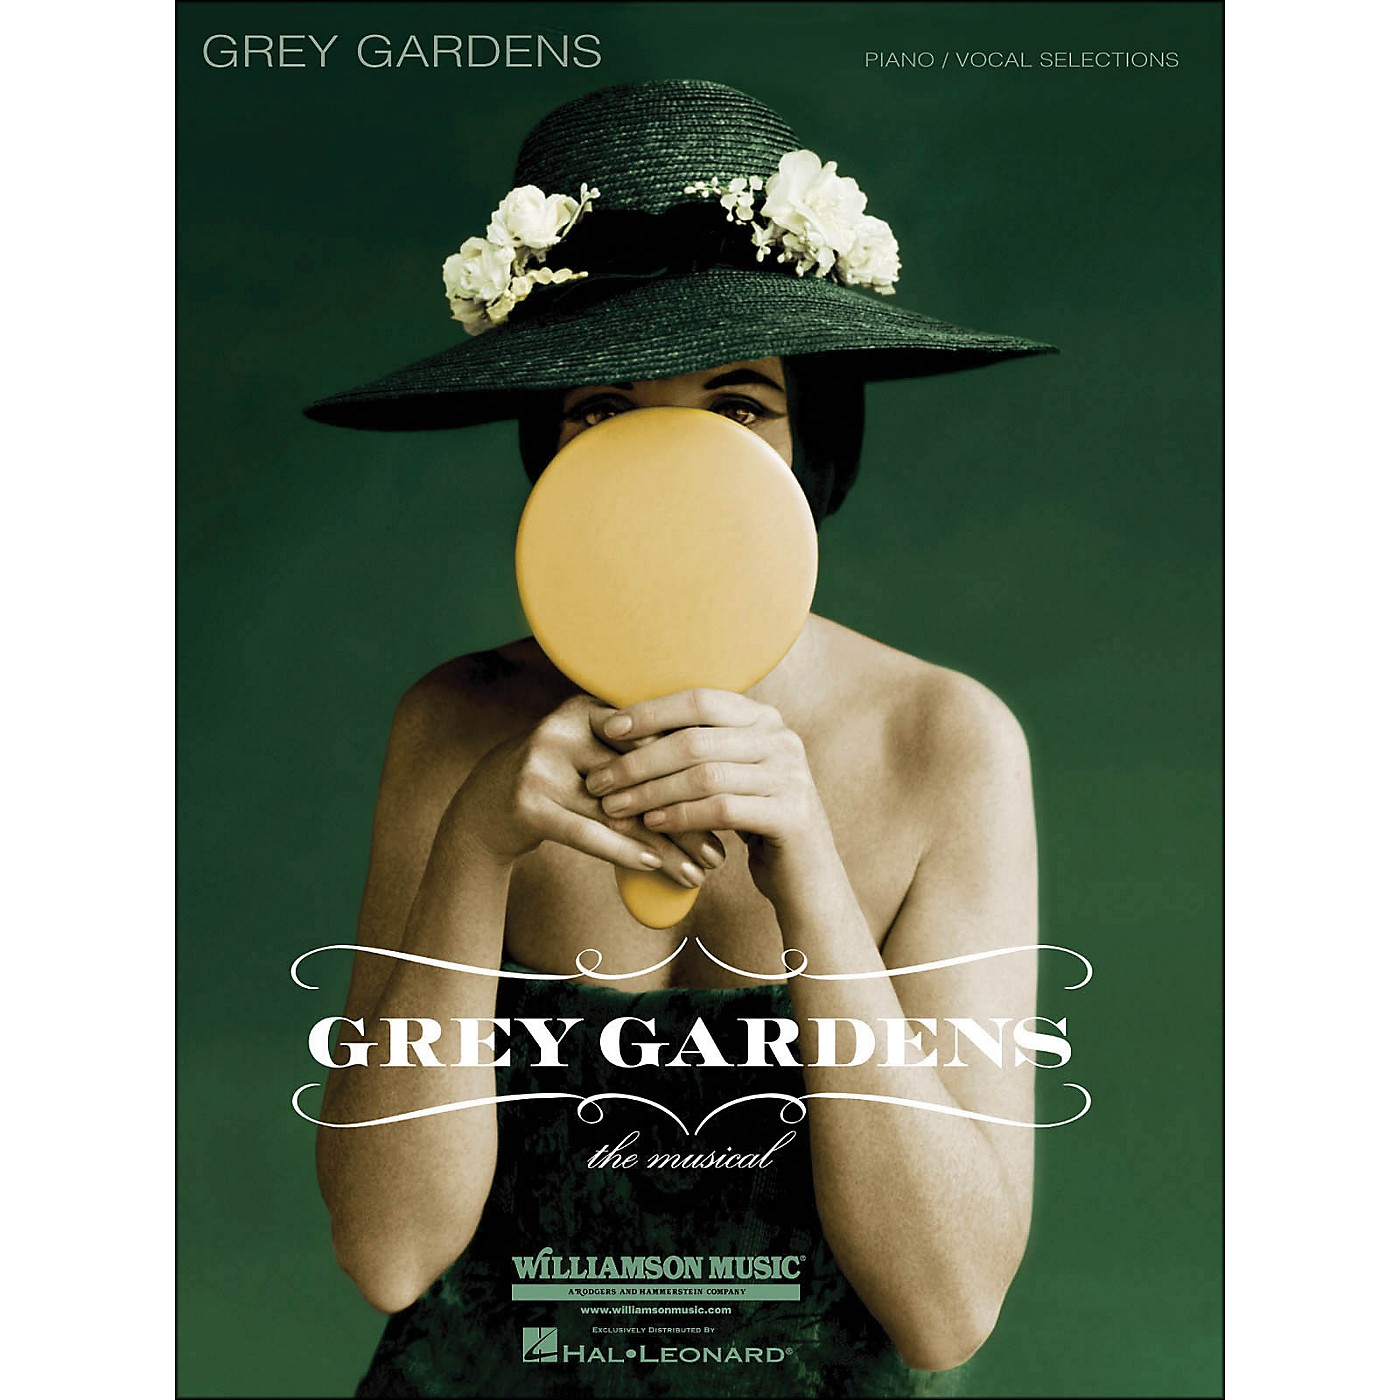 Hal Leonard Grey Gardens - The Musical arranged for piano, vocal, and guitar (P/V/G) thumbnail